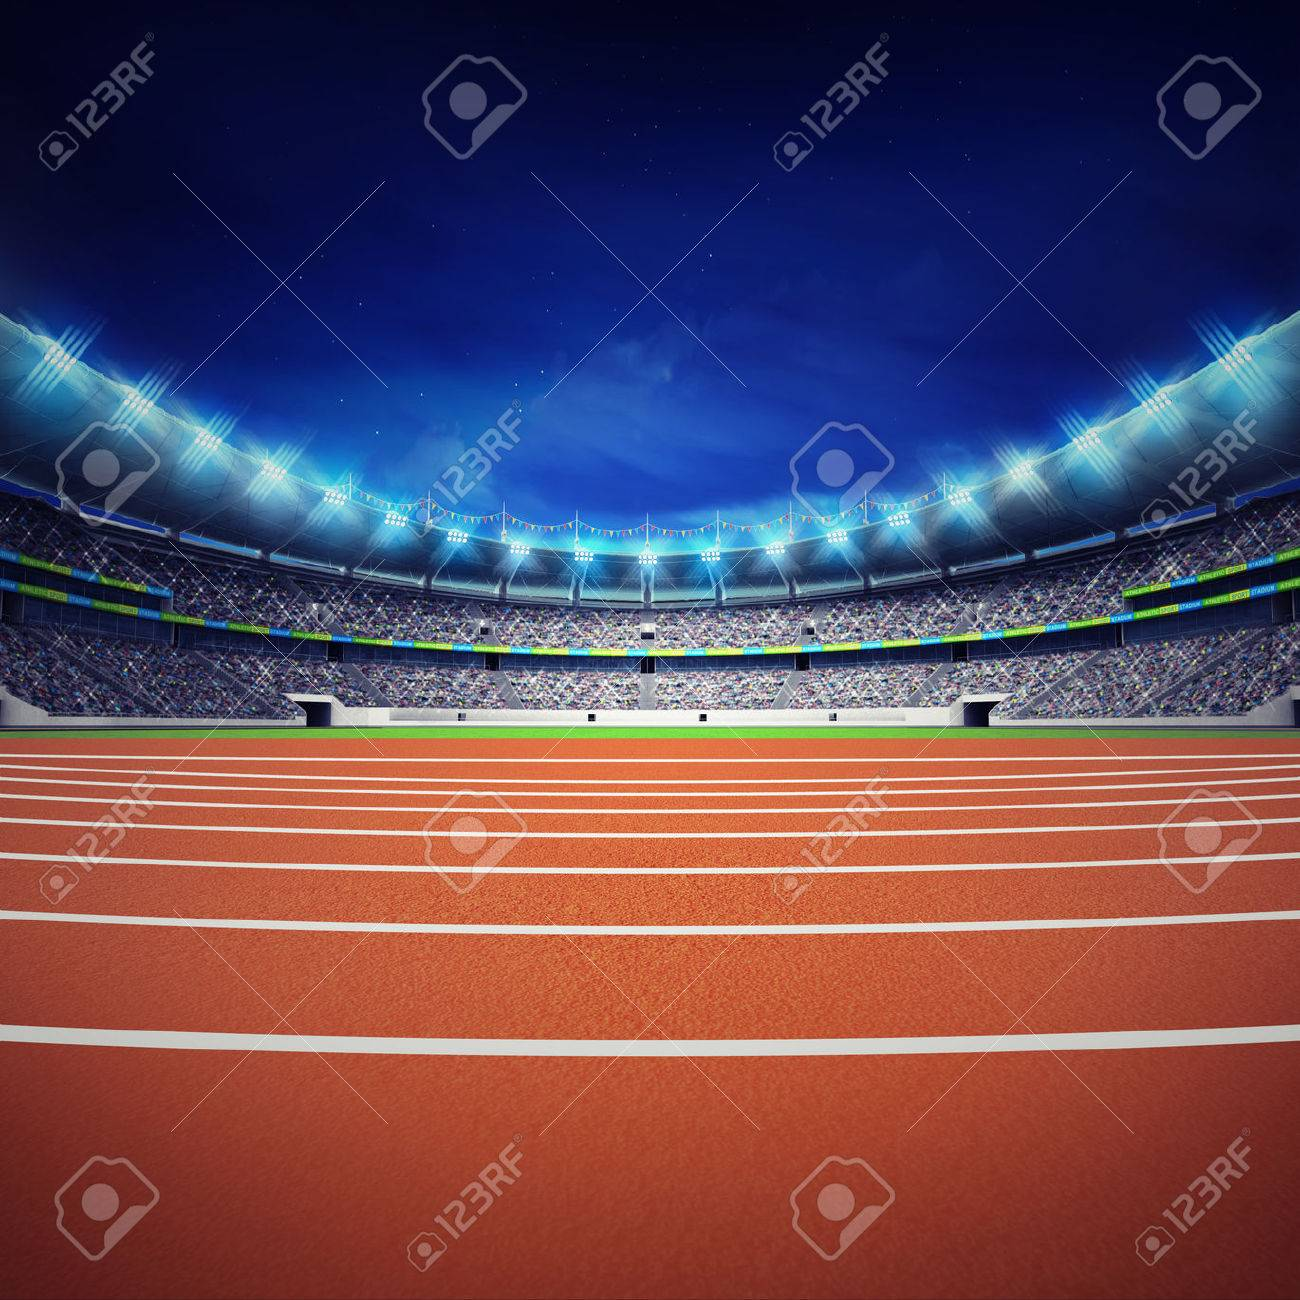 athletics stadium with track at general front night view - 43540622